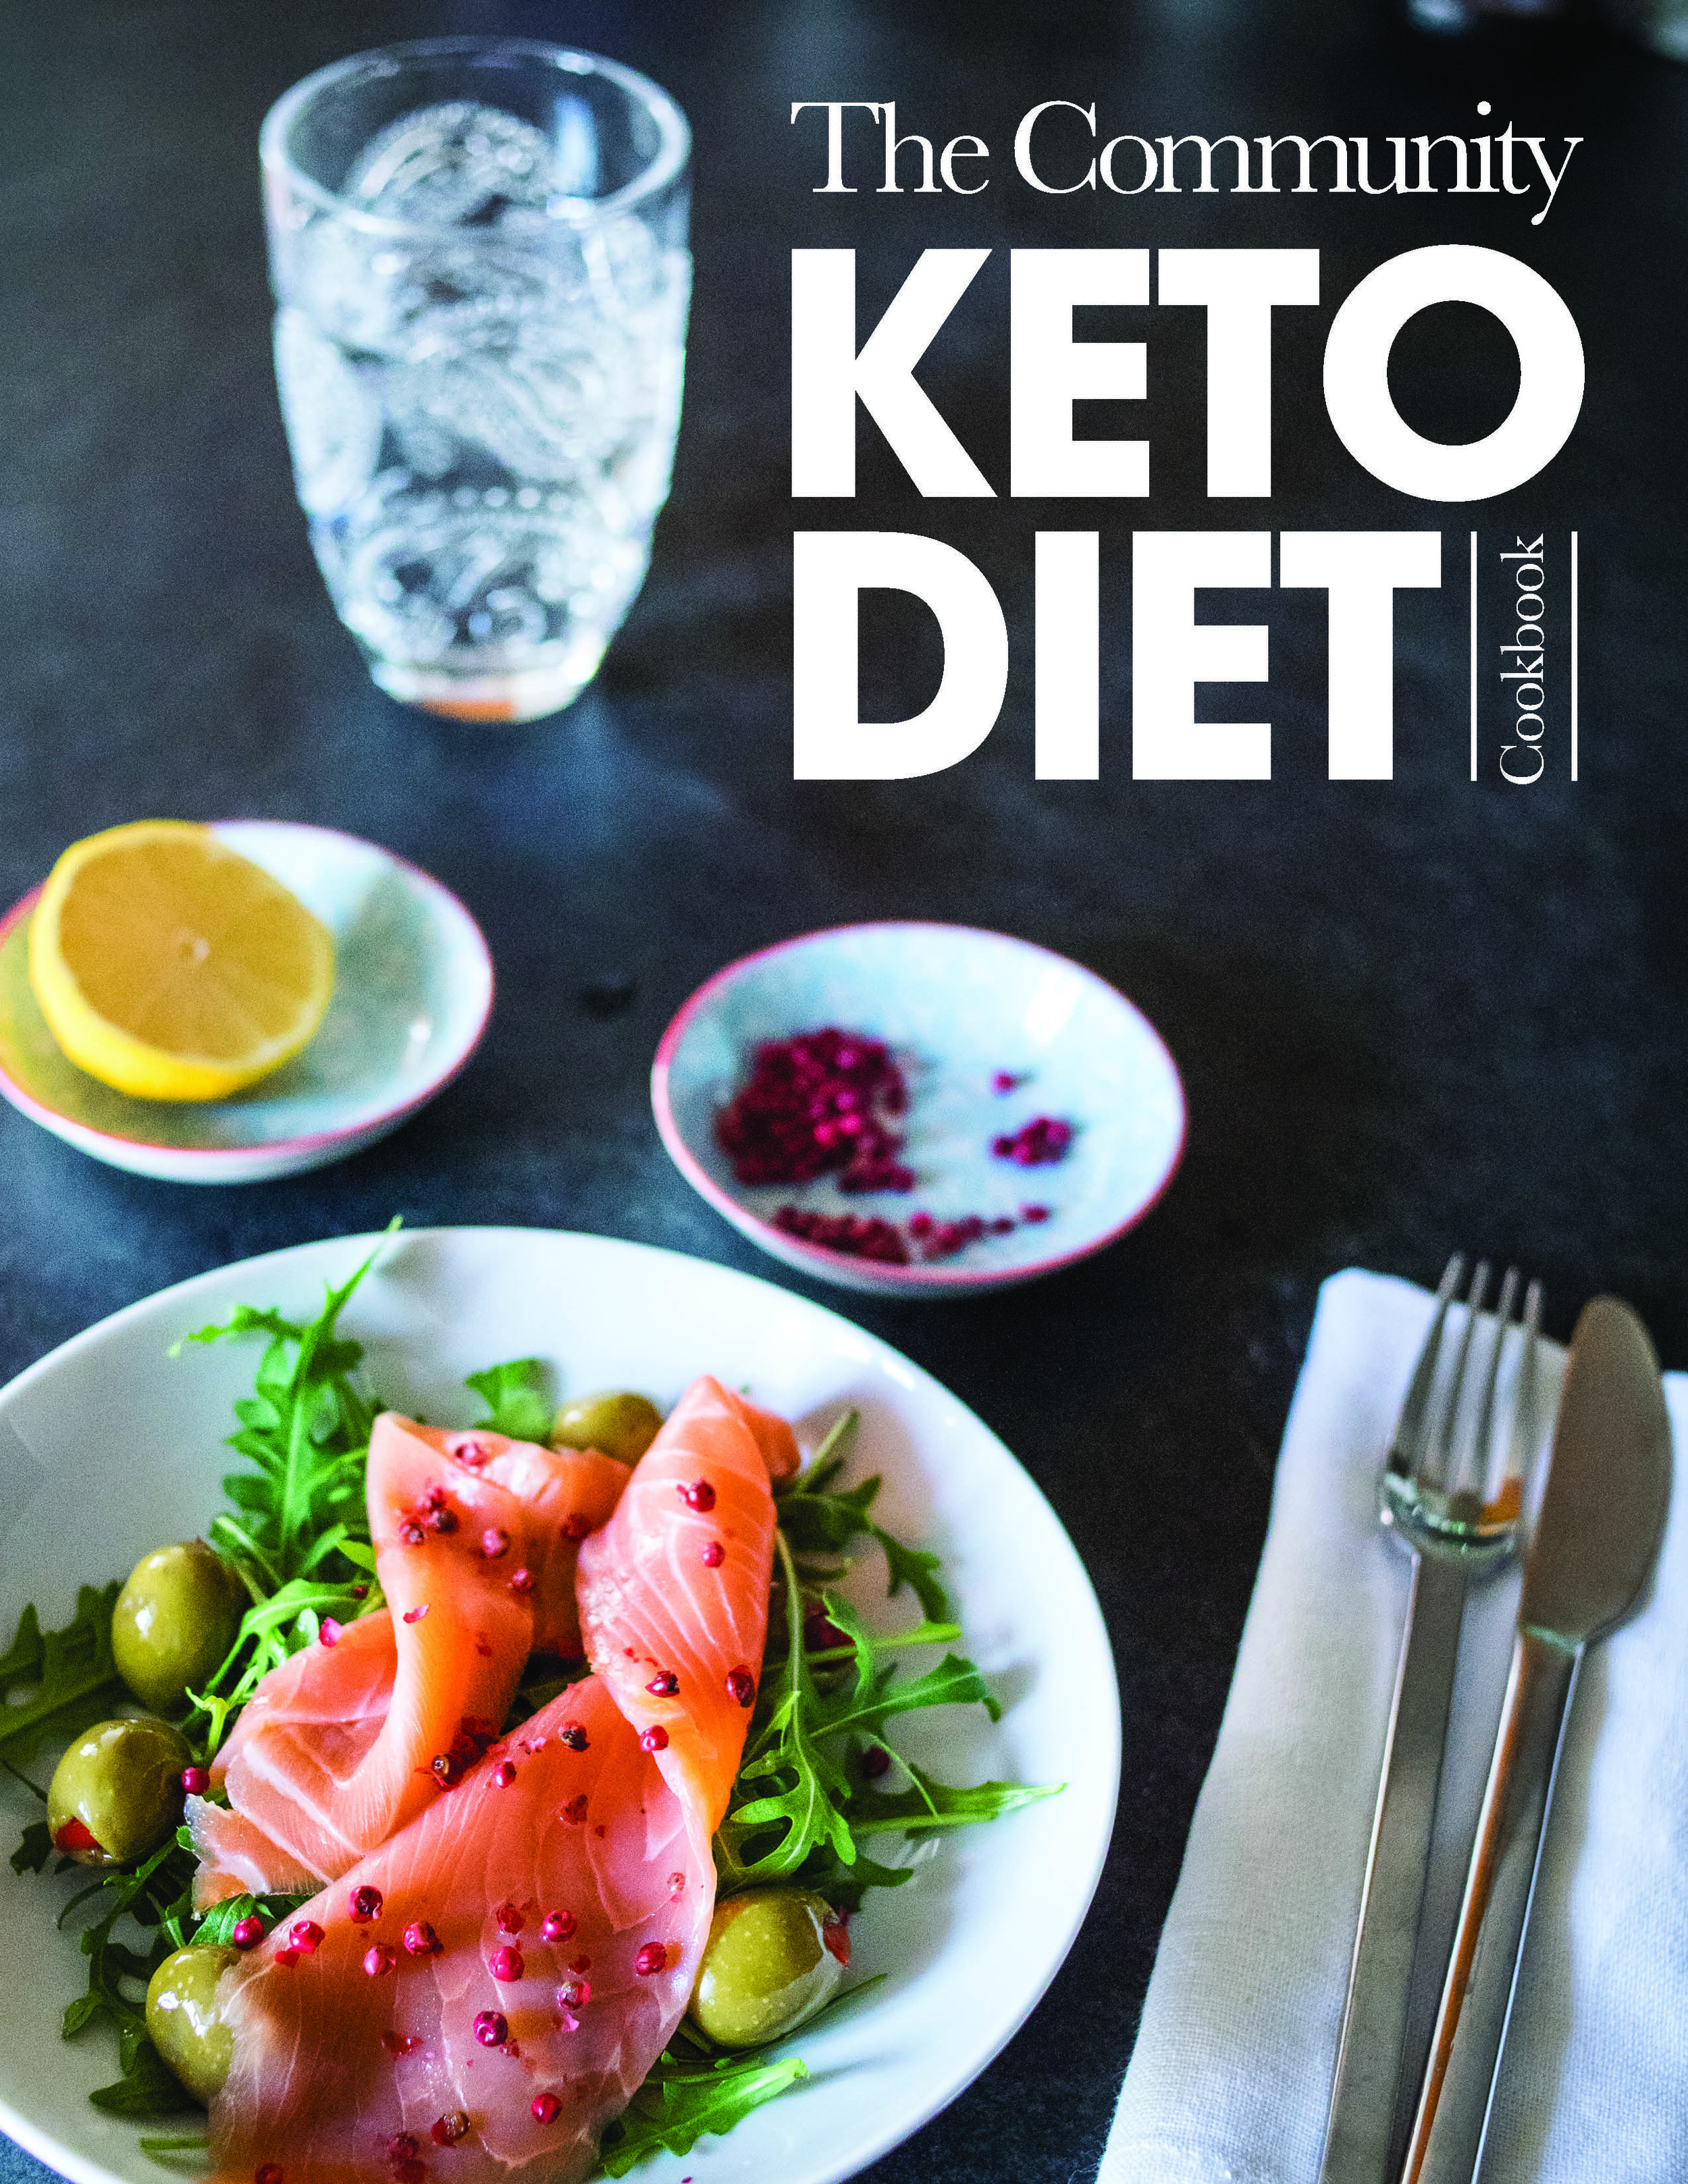 keto community diet cookbook cover